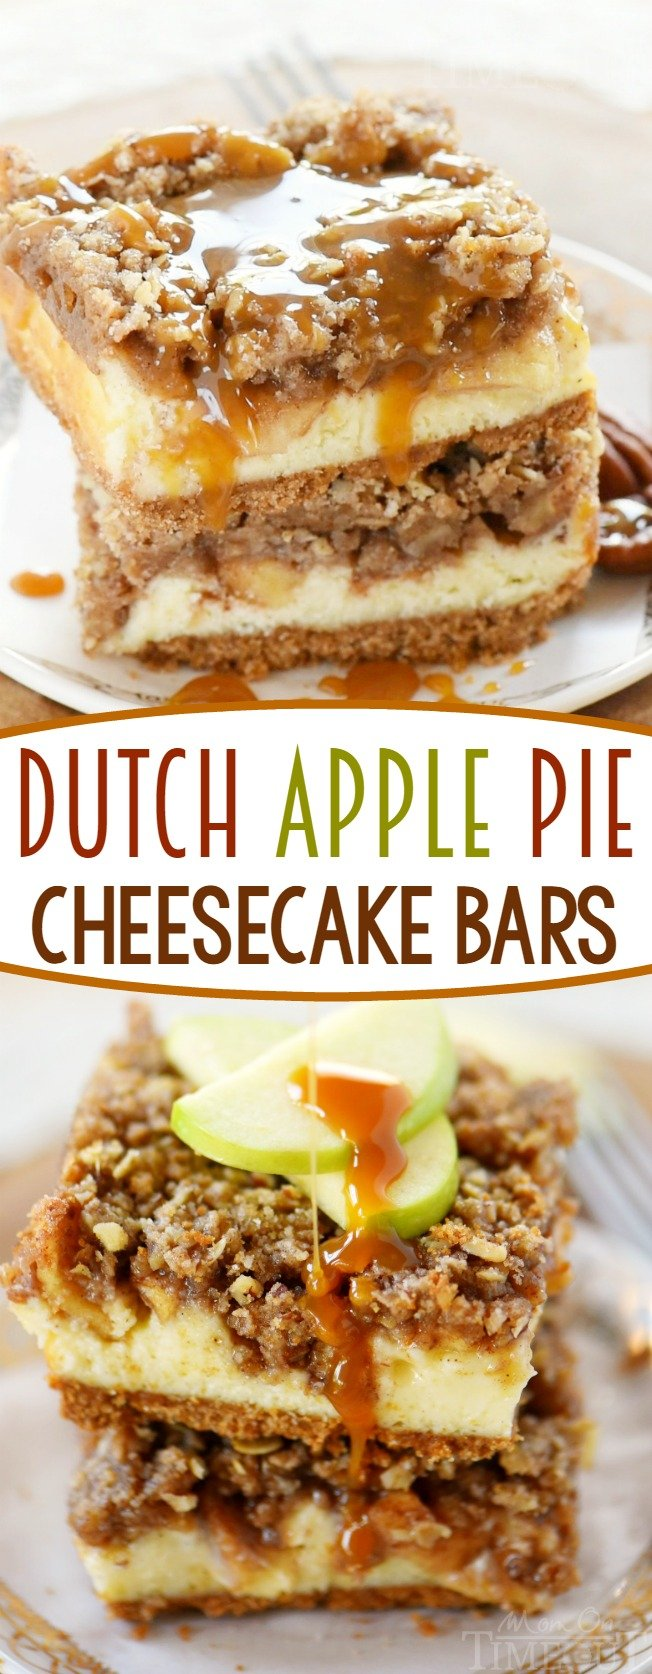 utch Apple Pie Cheesecake Bars! A graham cracker crust, a decadent cheesecake layer, spiced apples and finally my favorite streusel topping. Amazing! The perfect dessert for the fall season!